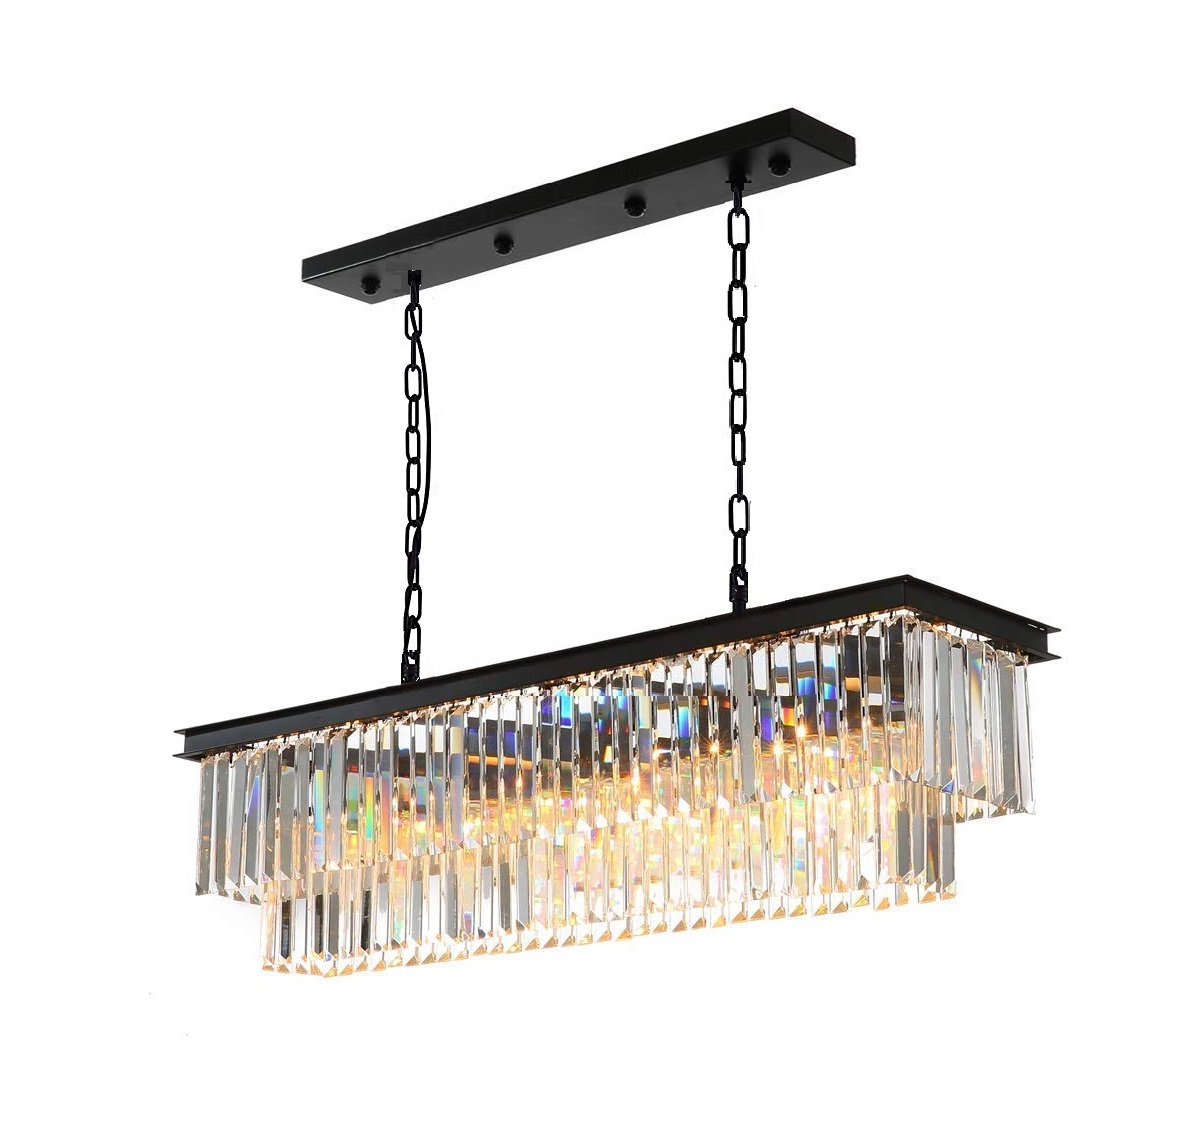 "Luxury Contemporary Rectangular Island Crystal Chandelier Lighting Fixture for Dining Room L23.5""xW11.8""xH11.8"""